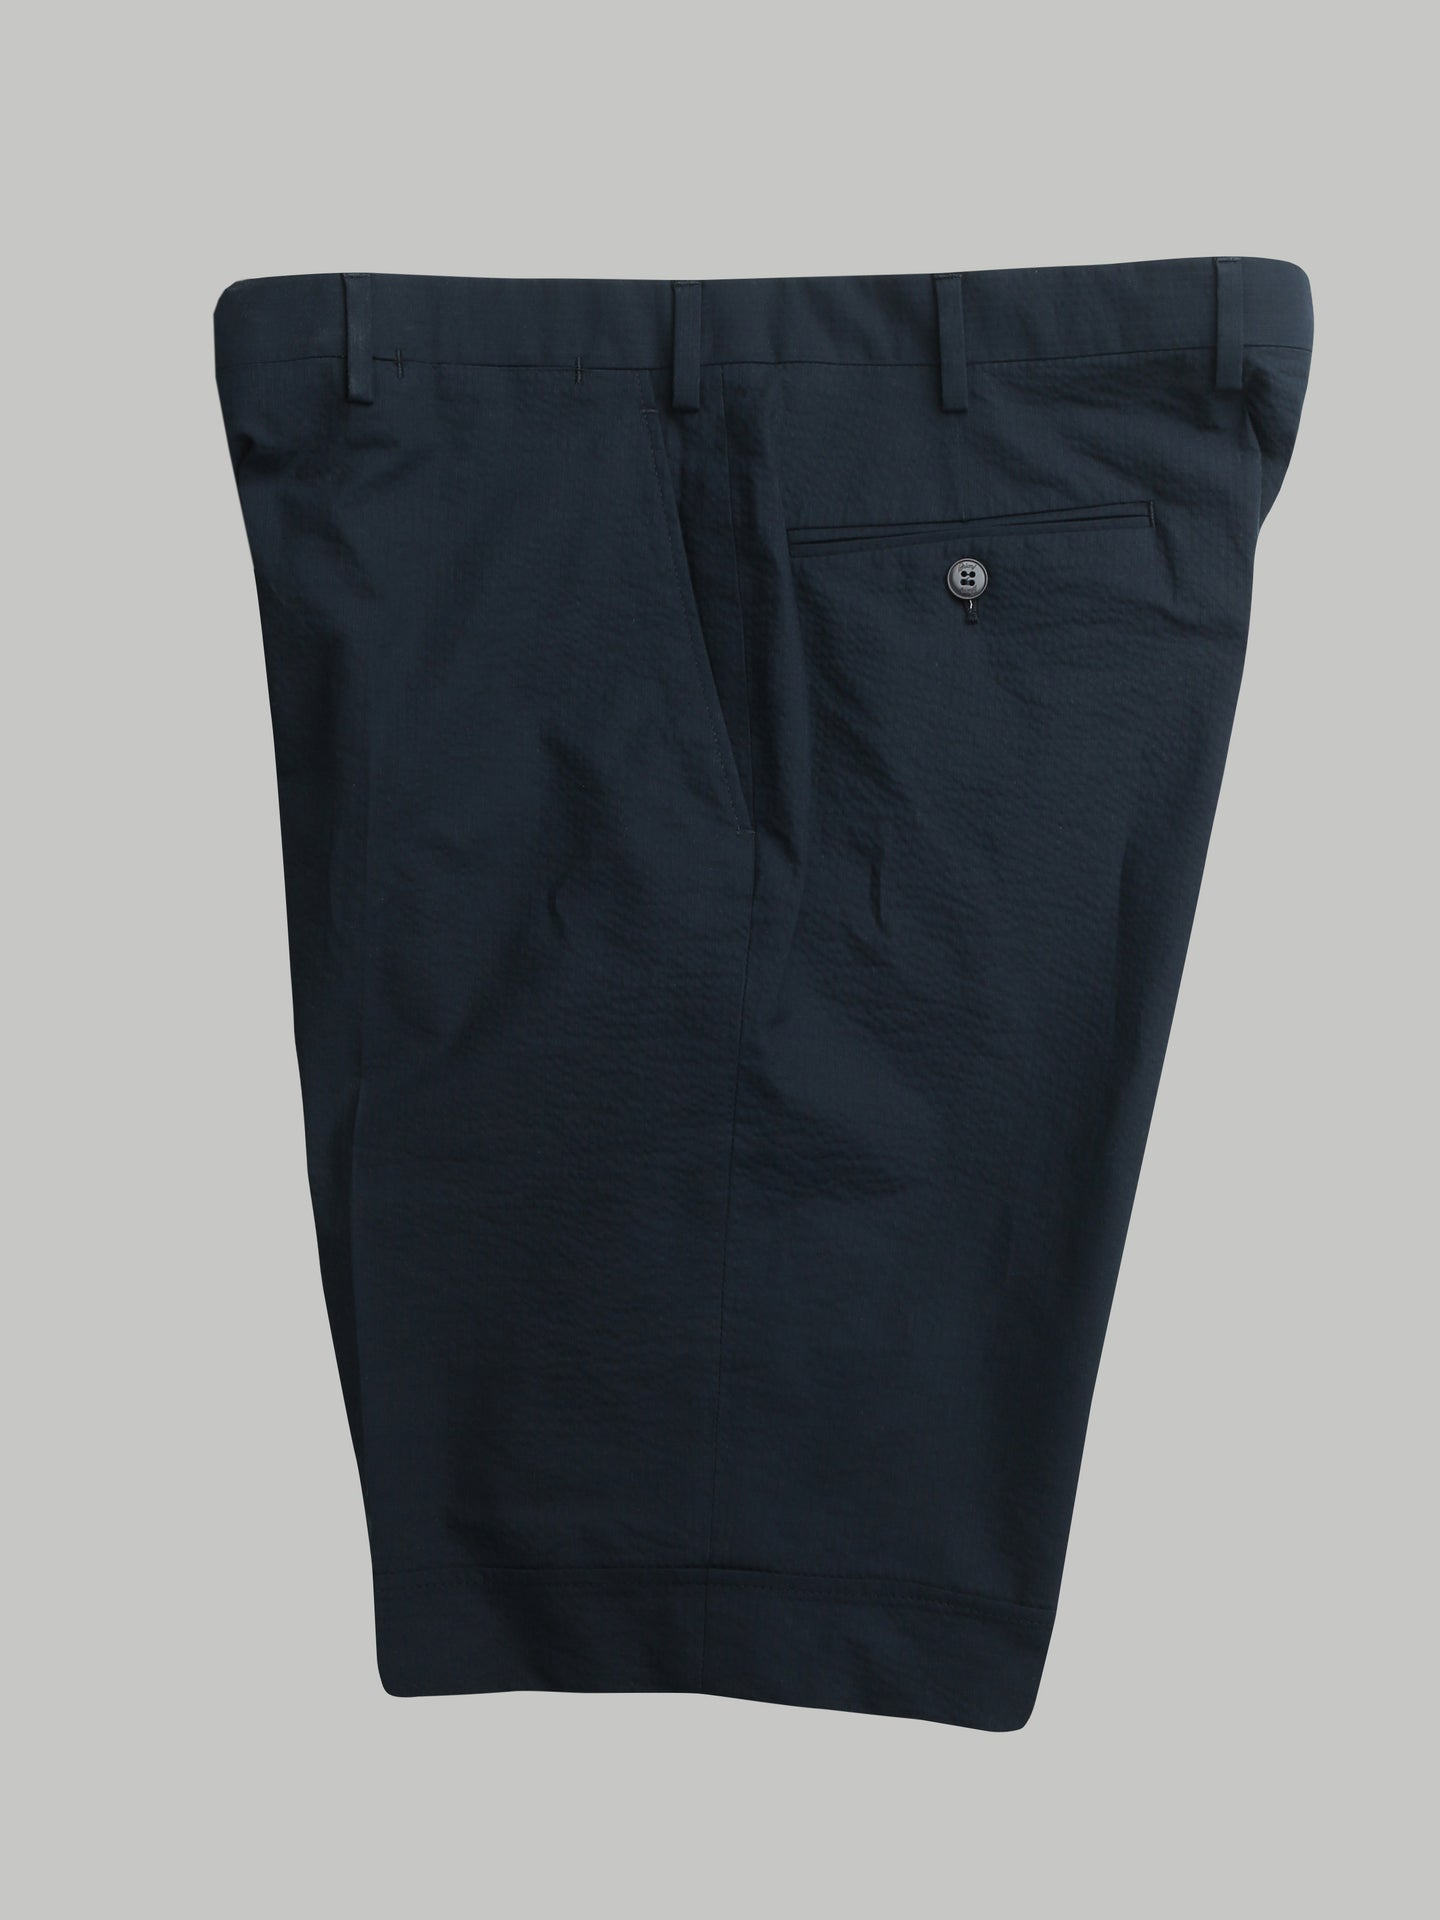 Brioni Shorts (Navy) - Union 22